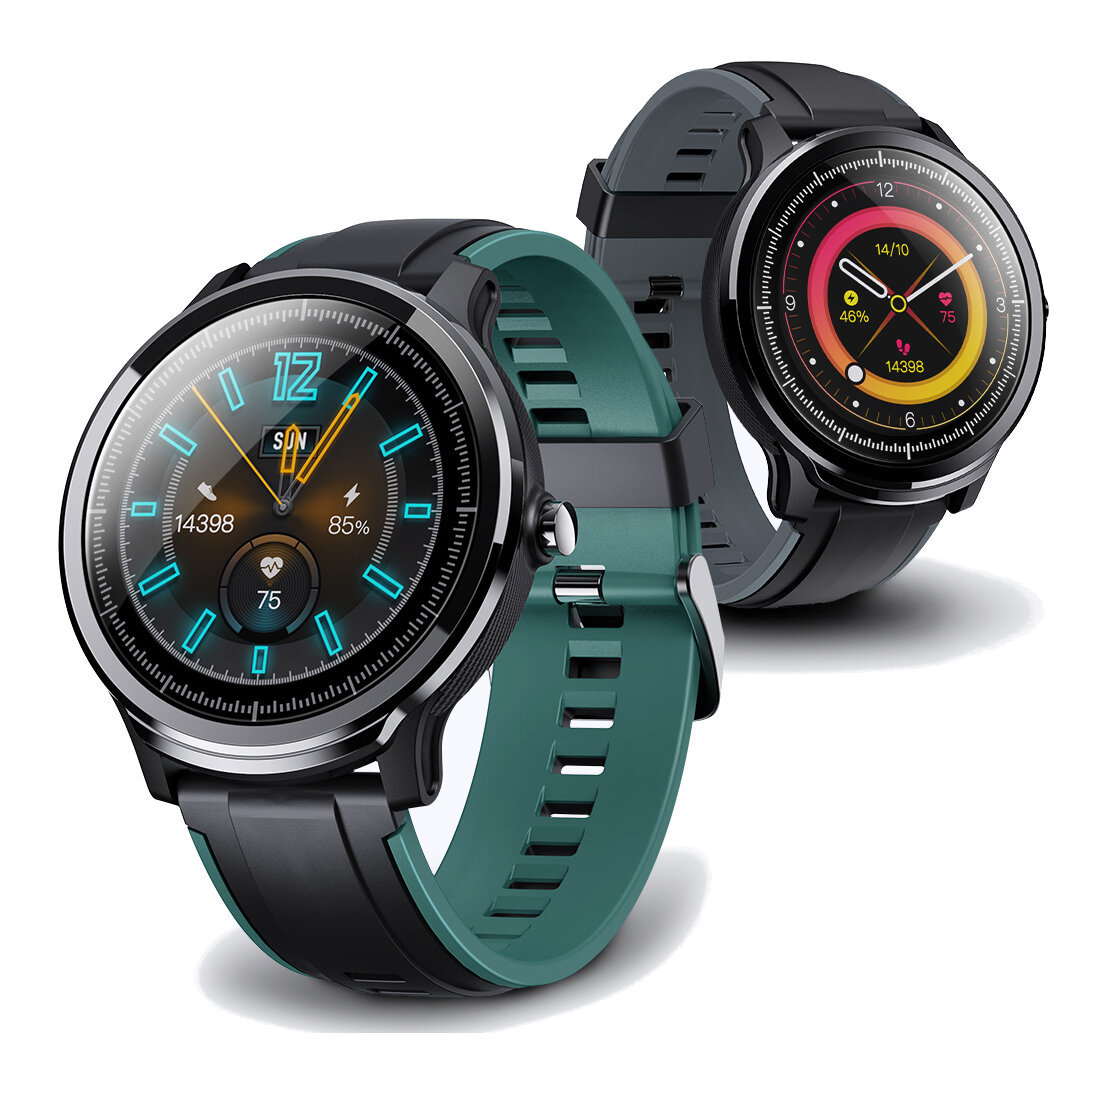 [SPO2 Monitor]Kospet Probe IP68 Full Touch Screen Wristband Customized Watch Face Heart Rate Monitor Long Standby Smart Watch